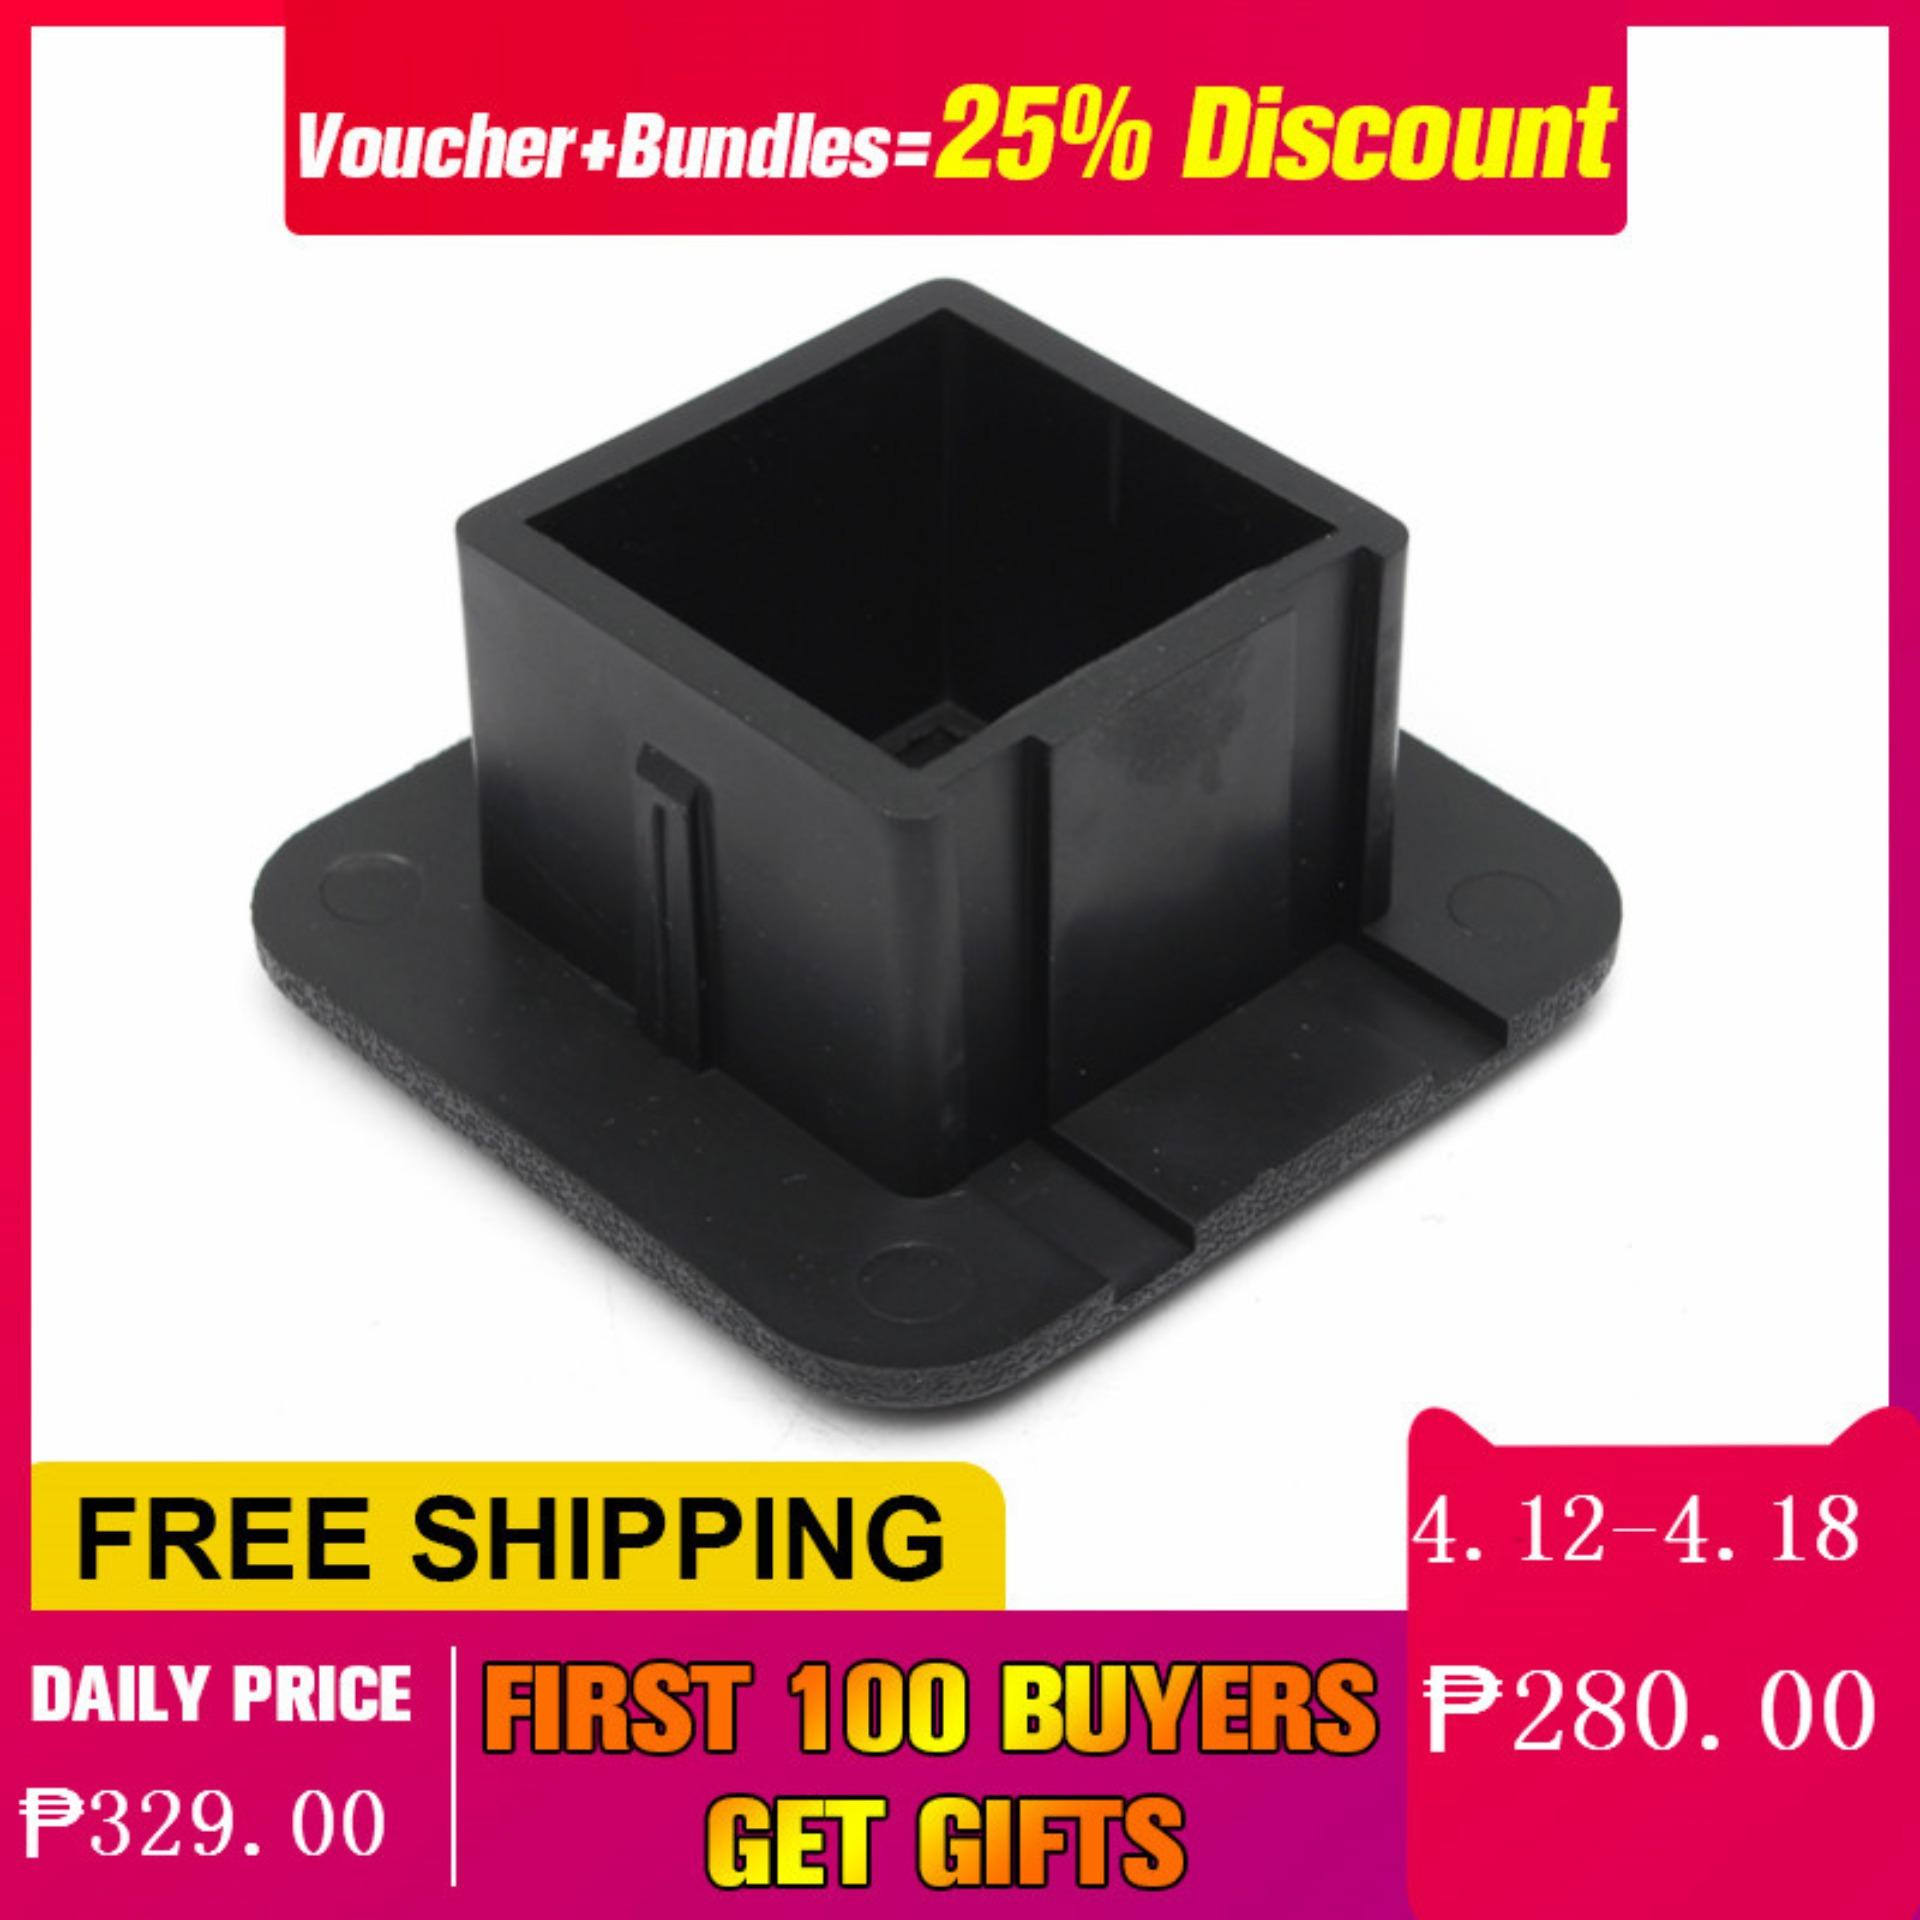 1 Pcs 2inch Hitch Receiver Cover Tralier Hauling Towing Cover Black Rubber  Square